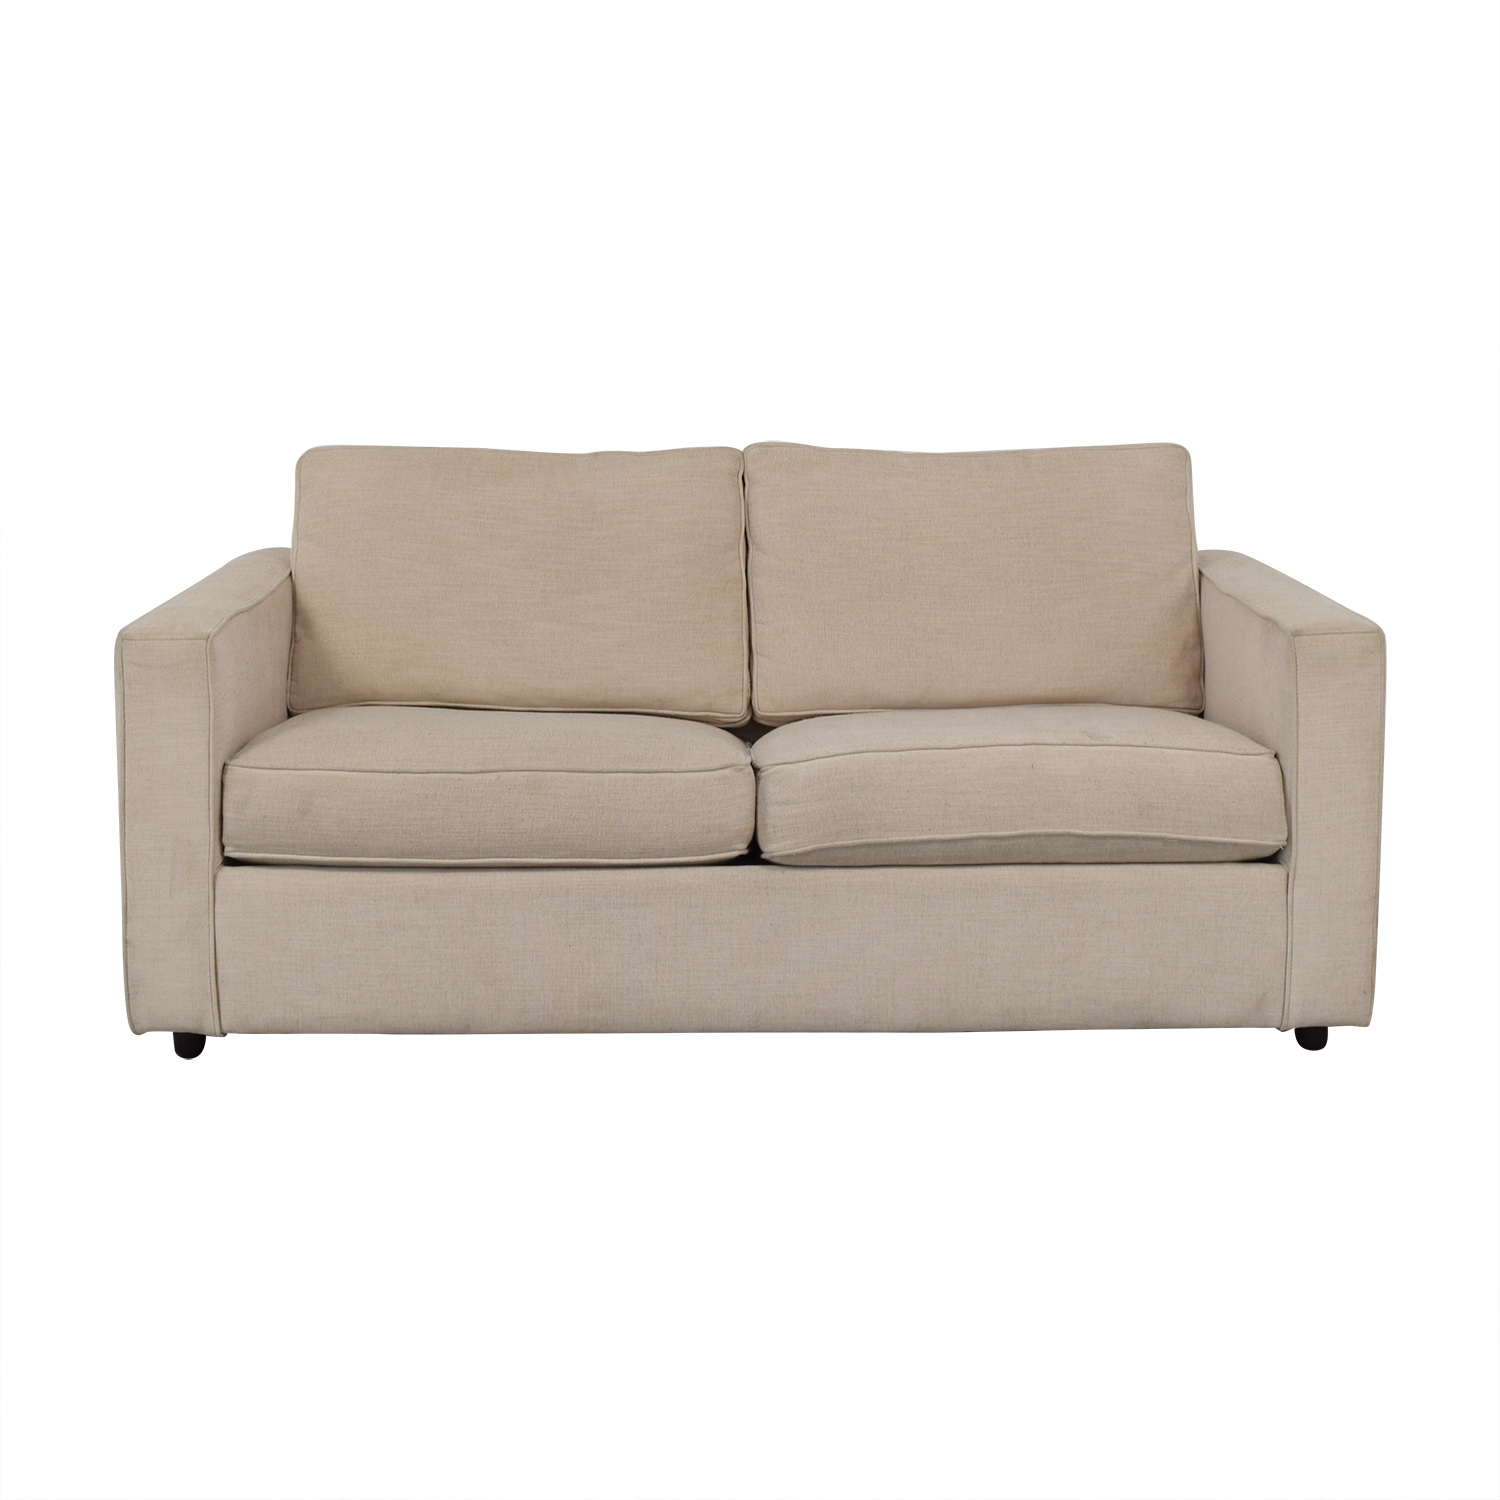 Arhaus Arhaus Filmore Air Sleeper Sofa dimensions